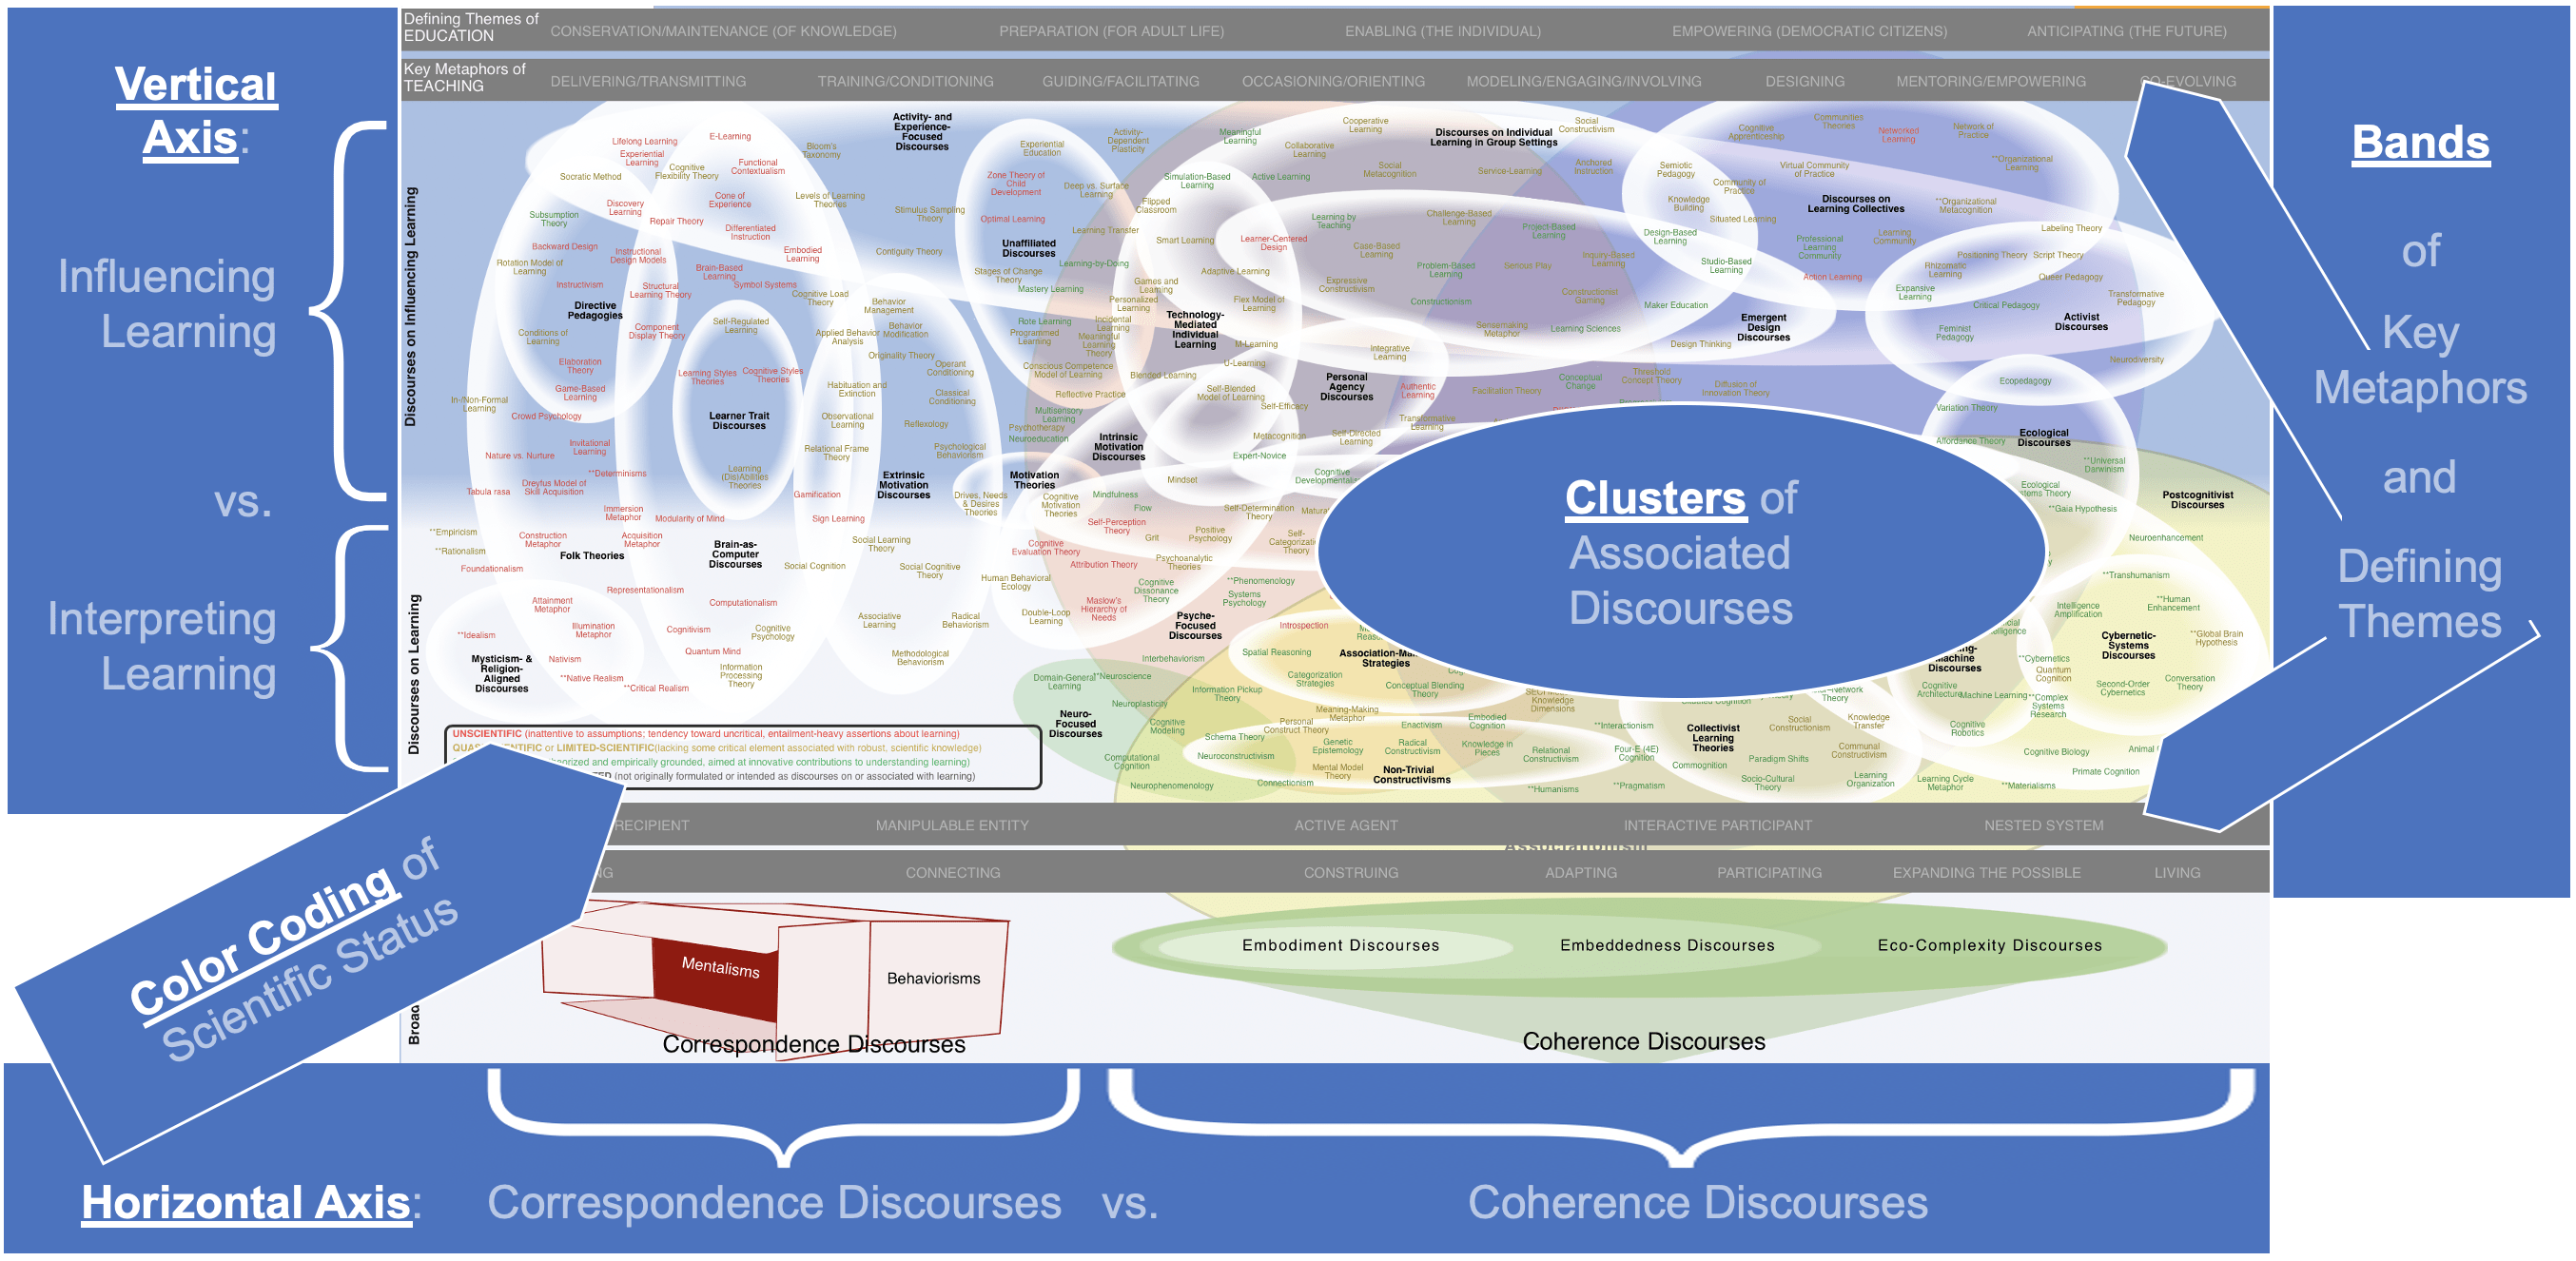 Reading the map.Horizontal Axis: Correspondence Discourses vs. Coherence Discourses Vertical Axis: Interpreting Learning vs. Influencing Learning Clusters of Associated Discourses Bands of Key Metaphors and Defining Themes Color Coding of Scientific Status